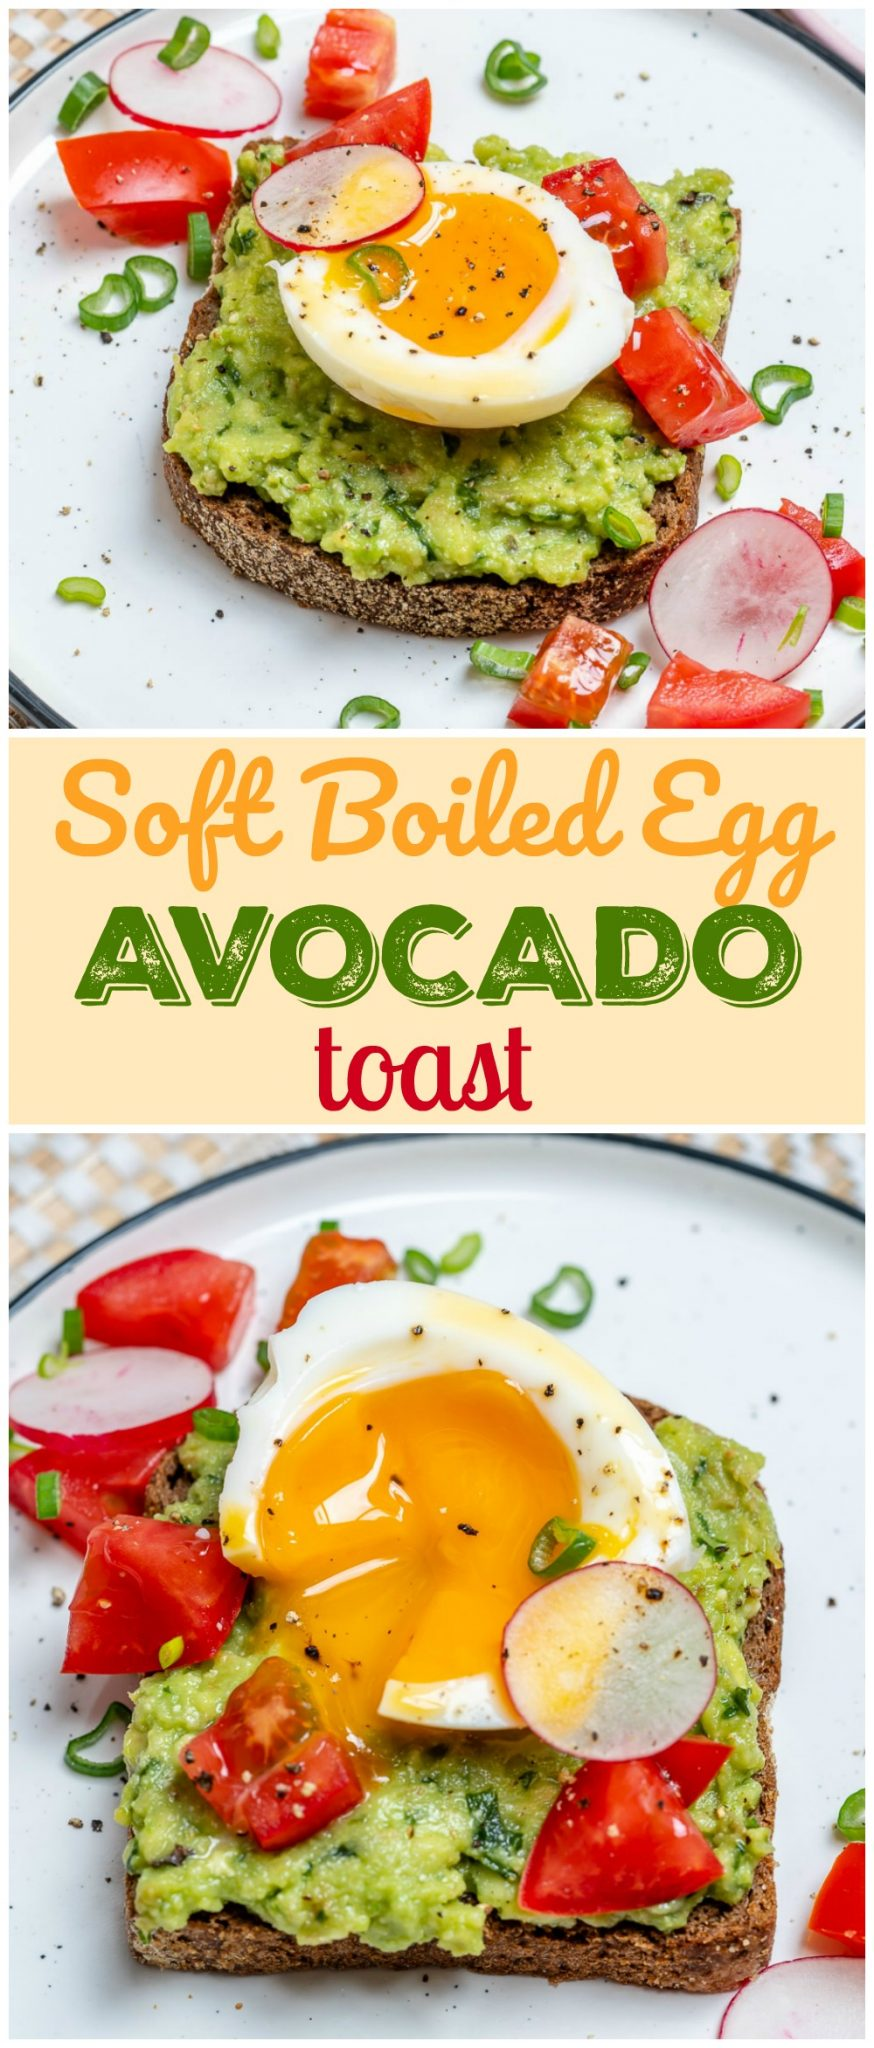 Egg-Avocado on Toast Clean Eating Recipes